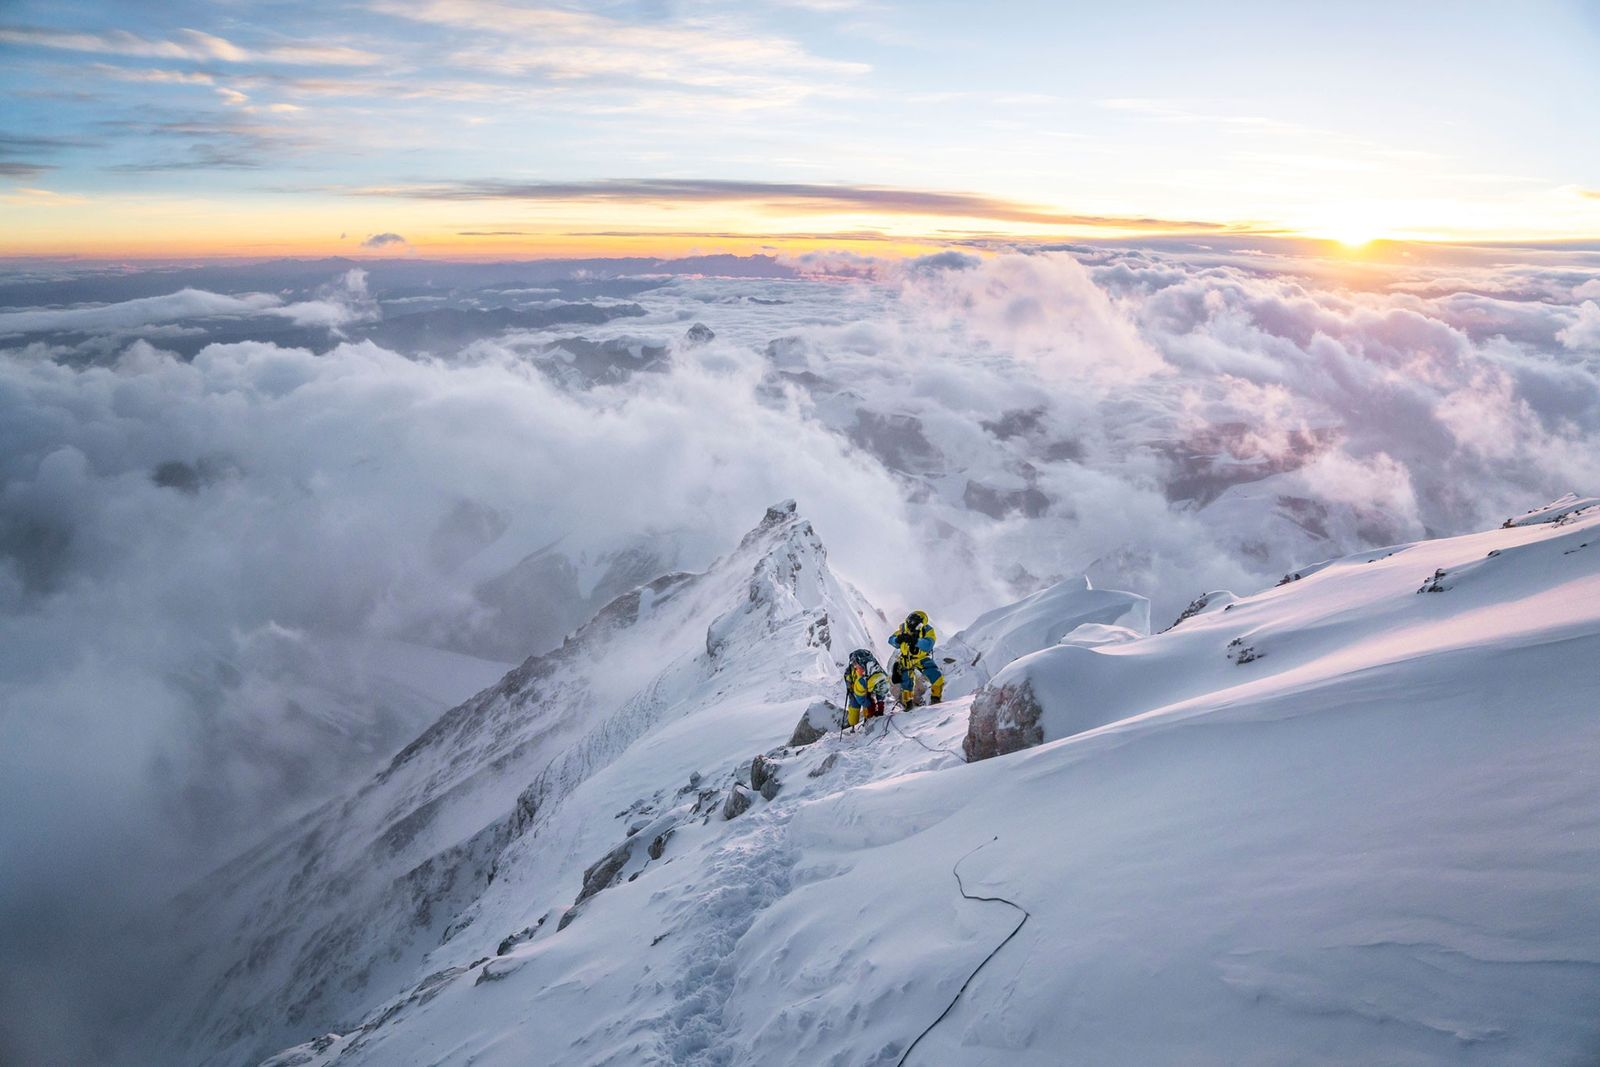 Two climbers crest the third step on the standard North Ridge route of Everest, elevation 28,000 ...